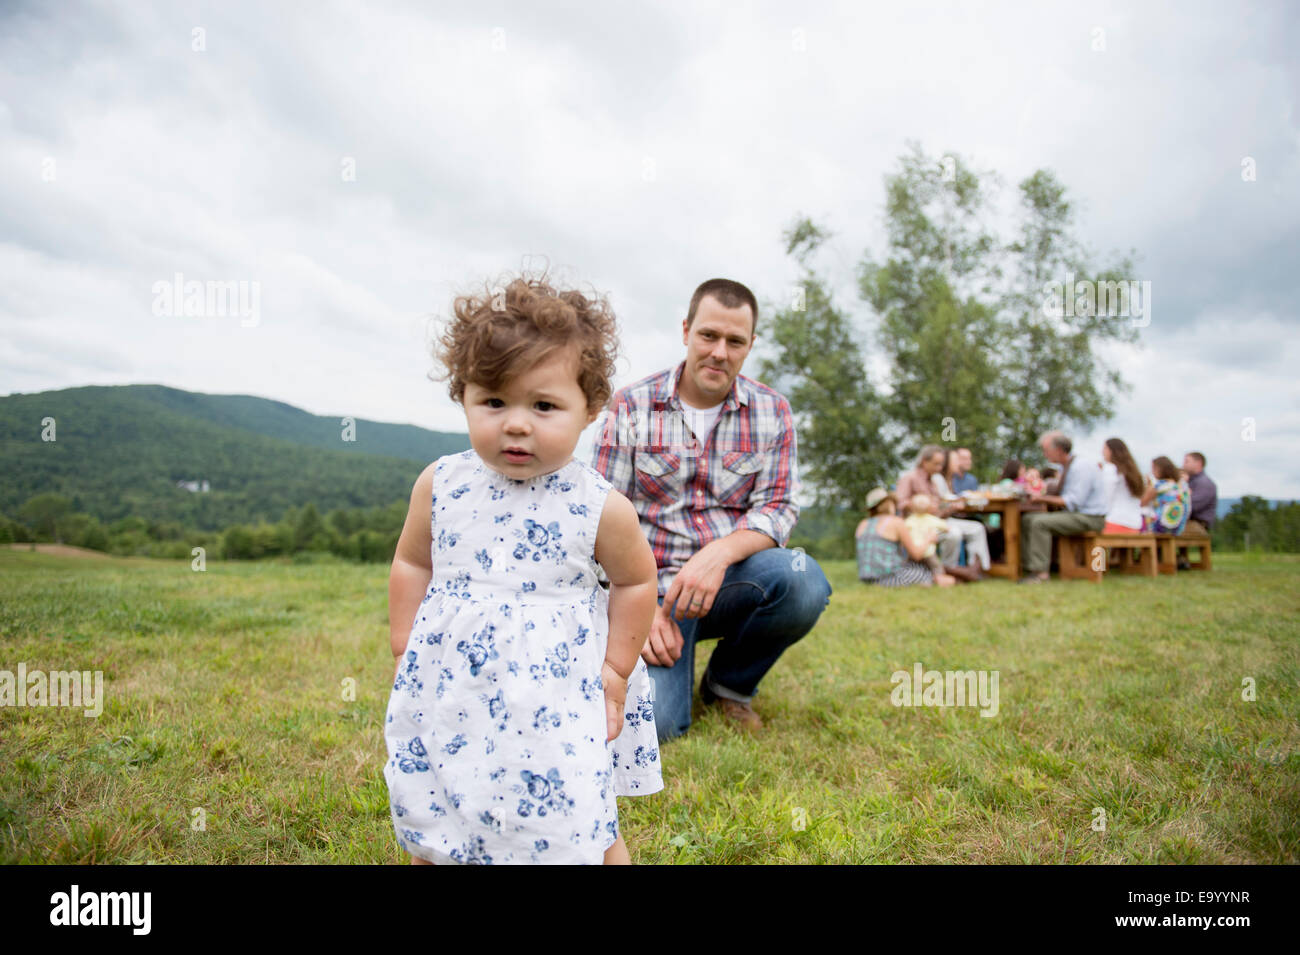 Father playing with daughter at family gathering, outdoors - Stock Image